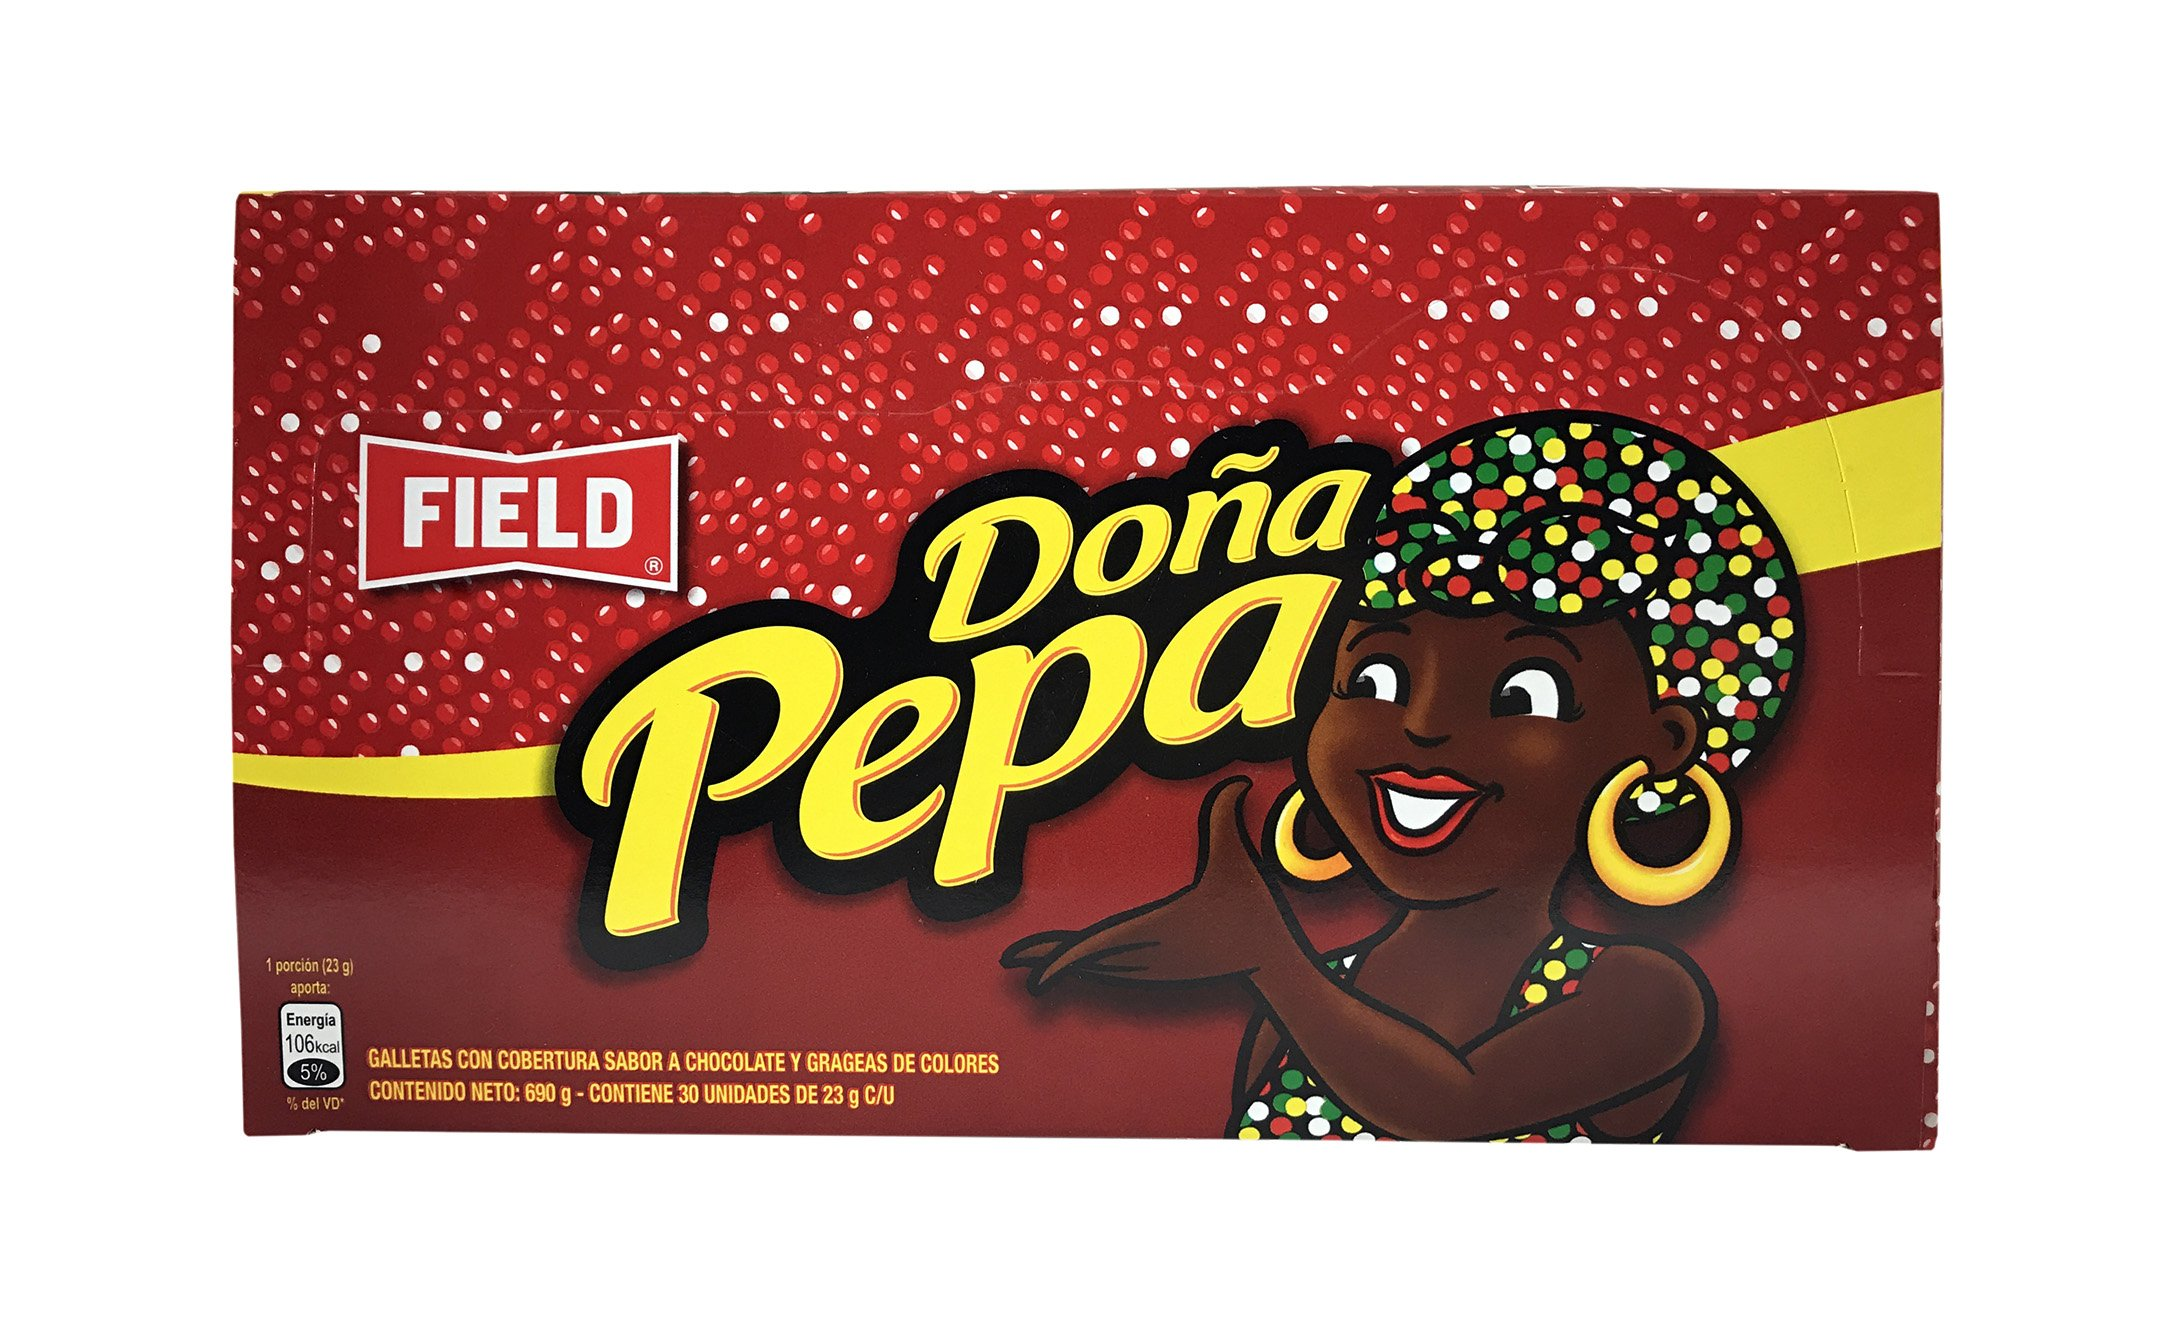 Field Galleta Con Chocolate Dona Pepa - Peruvian Cookies - 3O Pieces per Pack